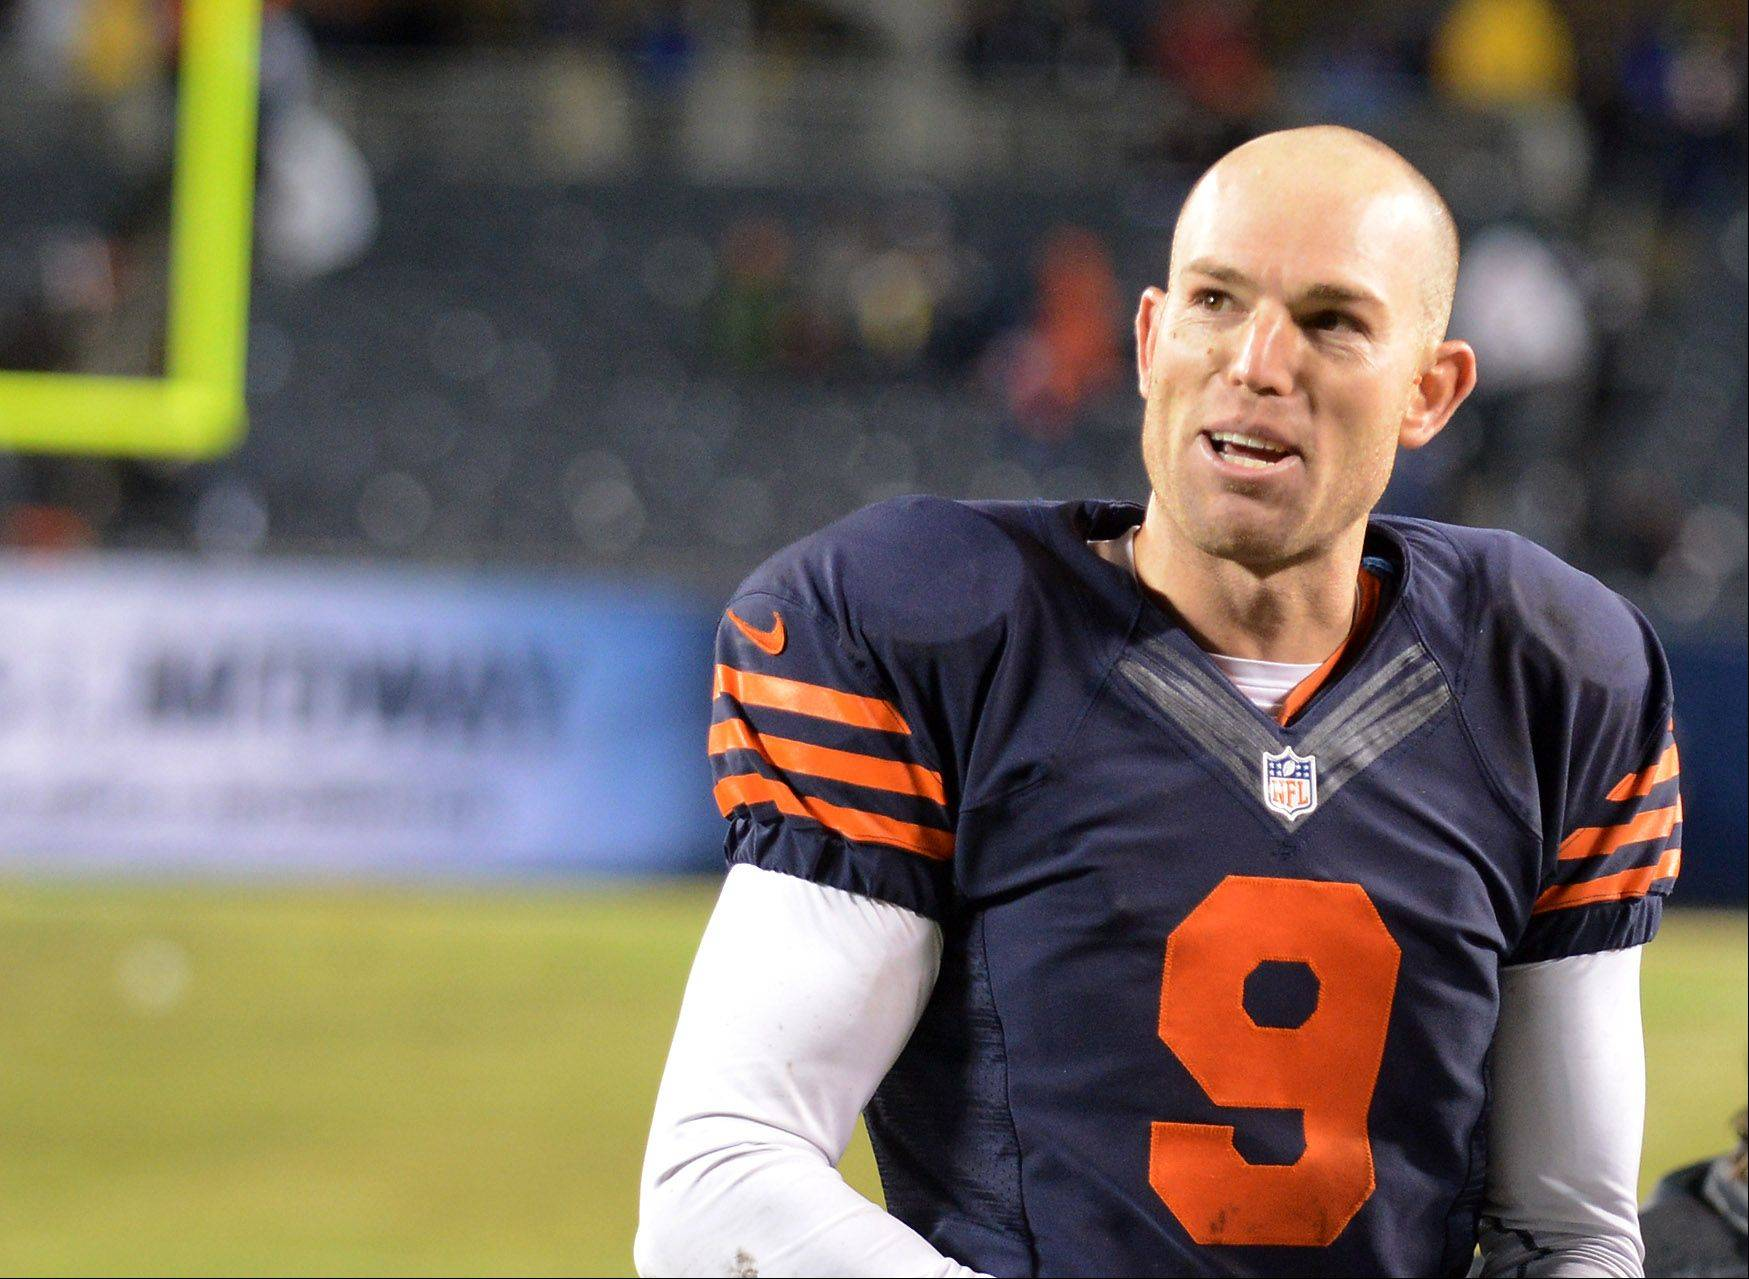 Bears kicker Robbie Gould smiles as he comes off the field after kicking the game winning field goal in overtime during Sunday's game in Chicago.